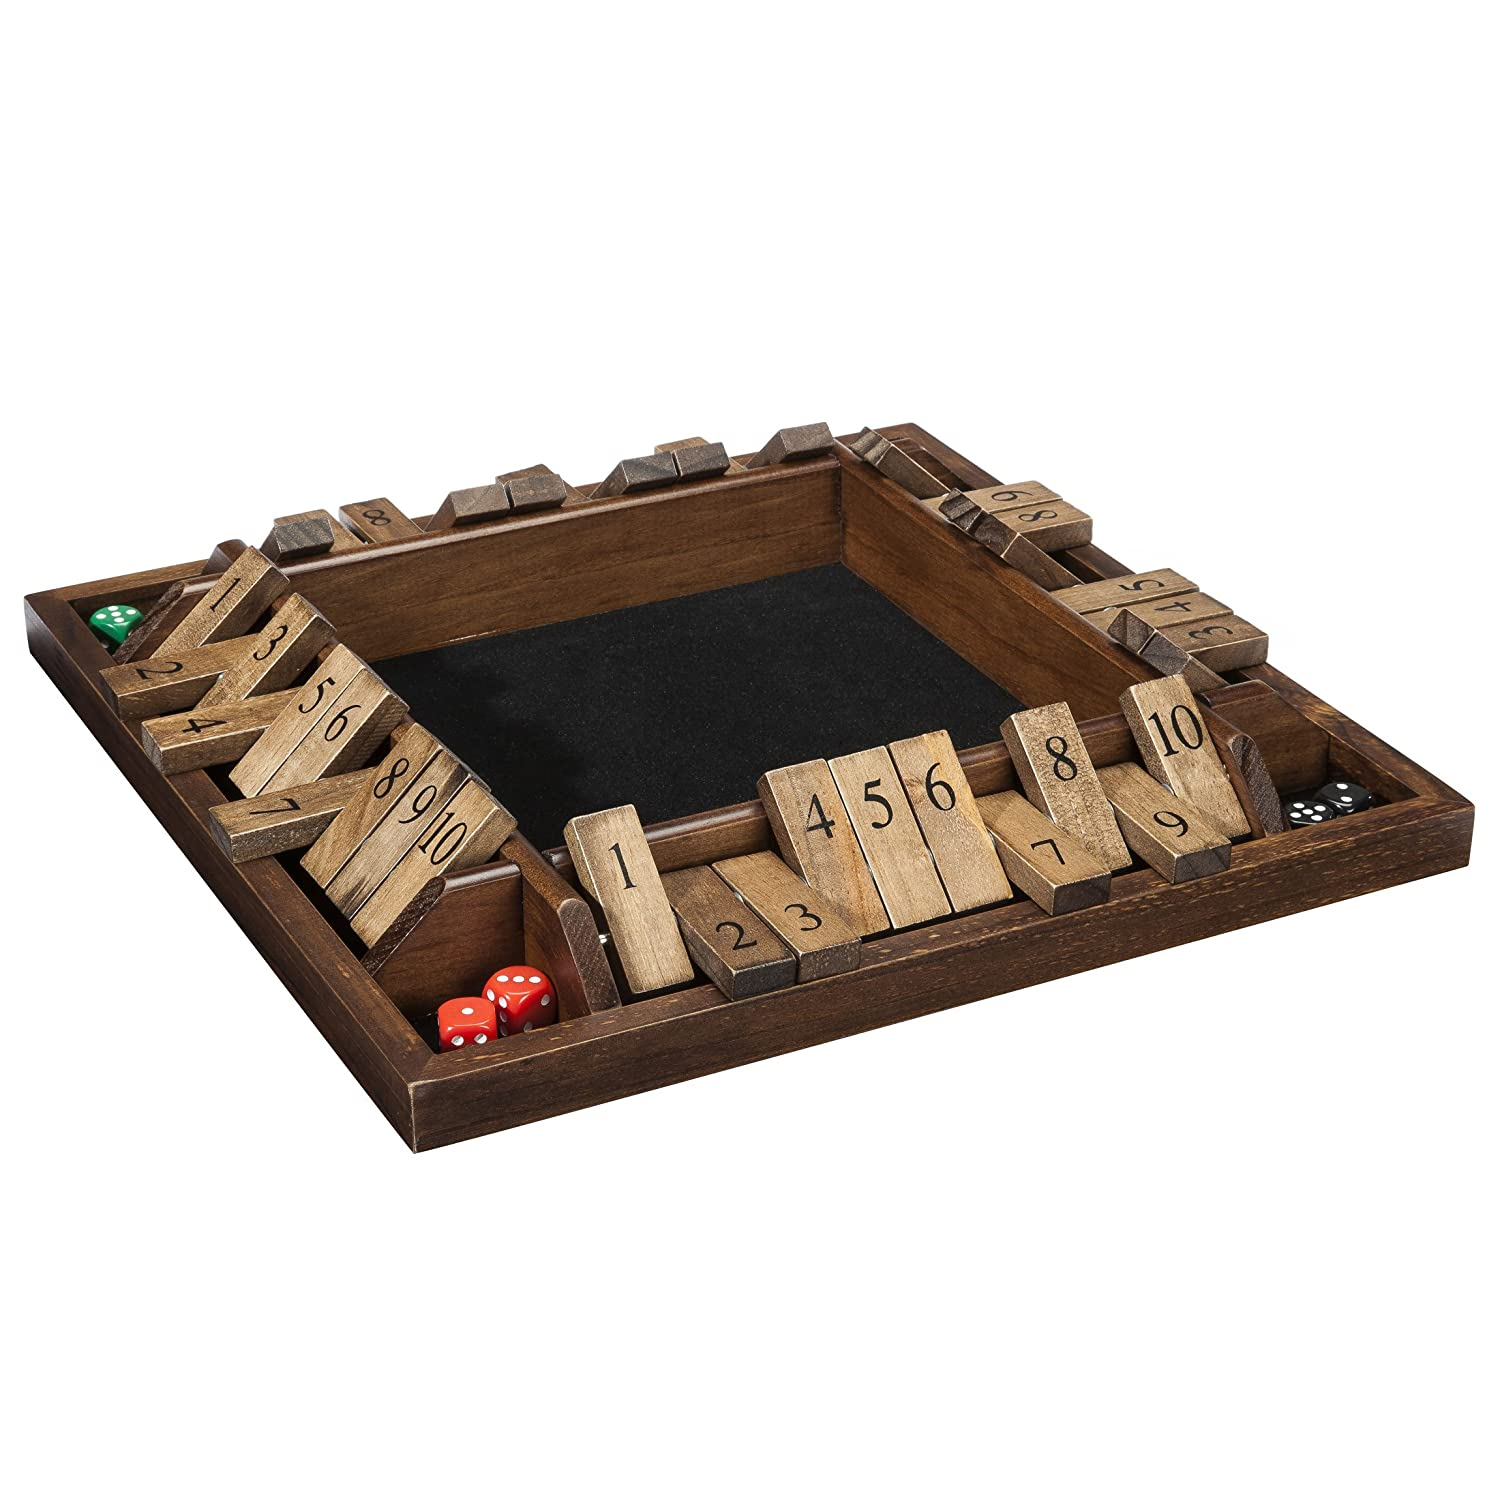 Amazon Com We Games 4 Player Shut The Box Travel Size 8 Inches